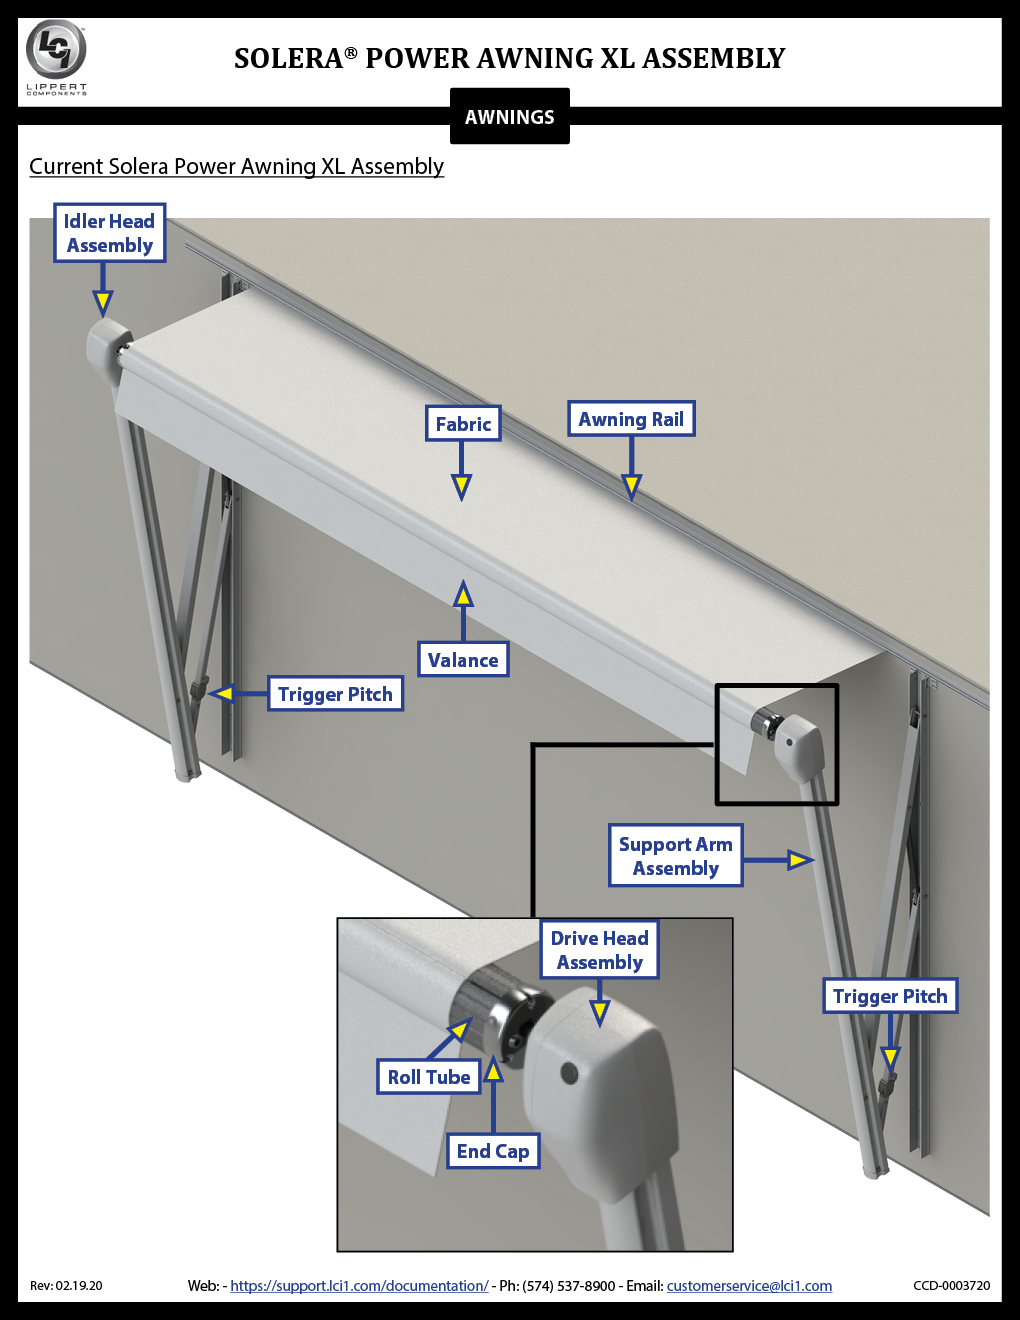 Solera® Power Awning XL Awning Assembly